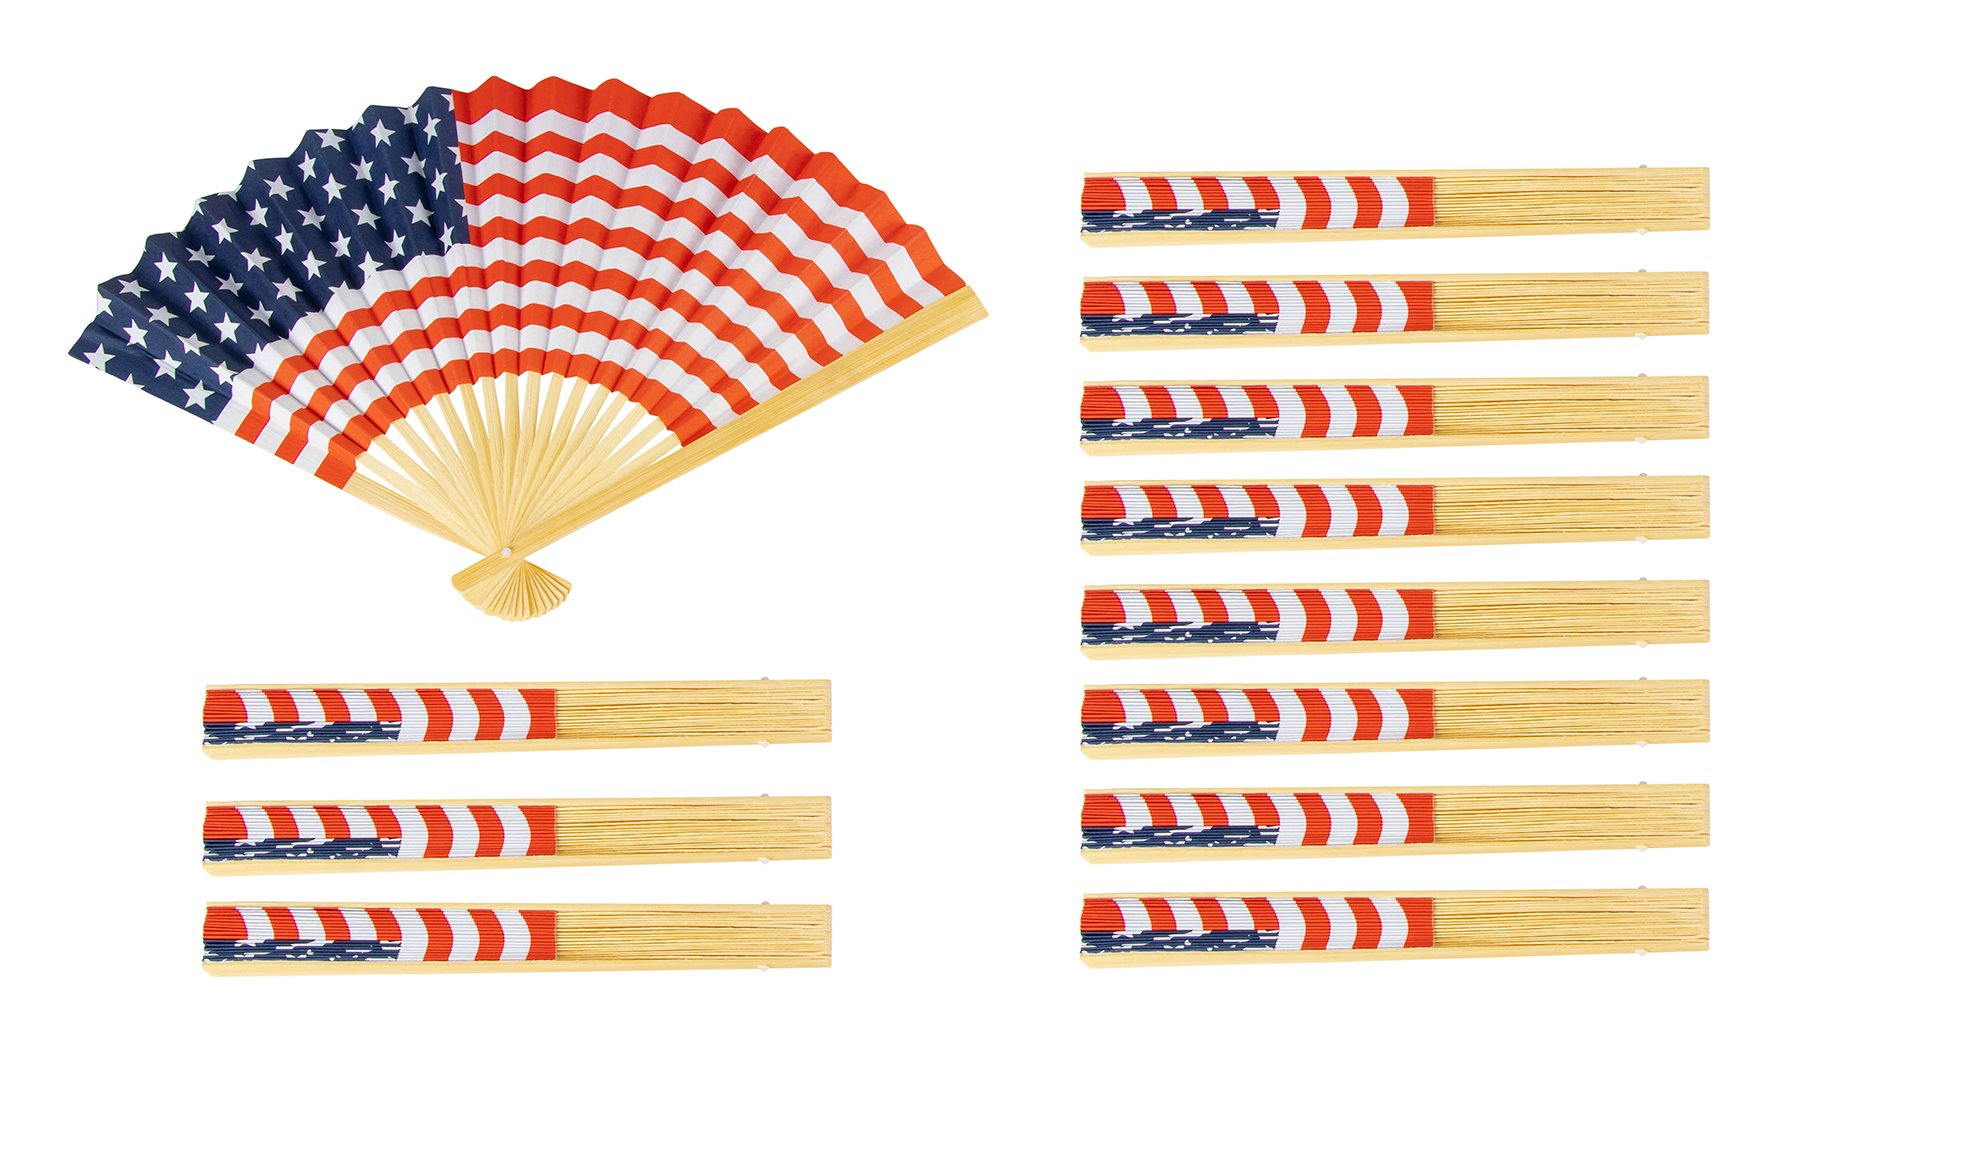 USA Flag Fan - 12-Pack American Flag Fan, Patriotic Party Favors, Handheld Folding Paper Fan in Red, White and Blue, 14.2 x 10 Inches